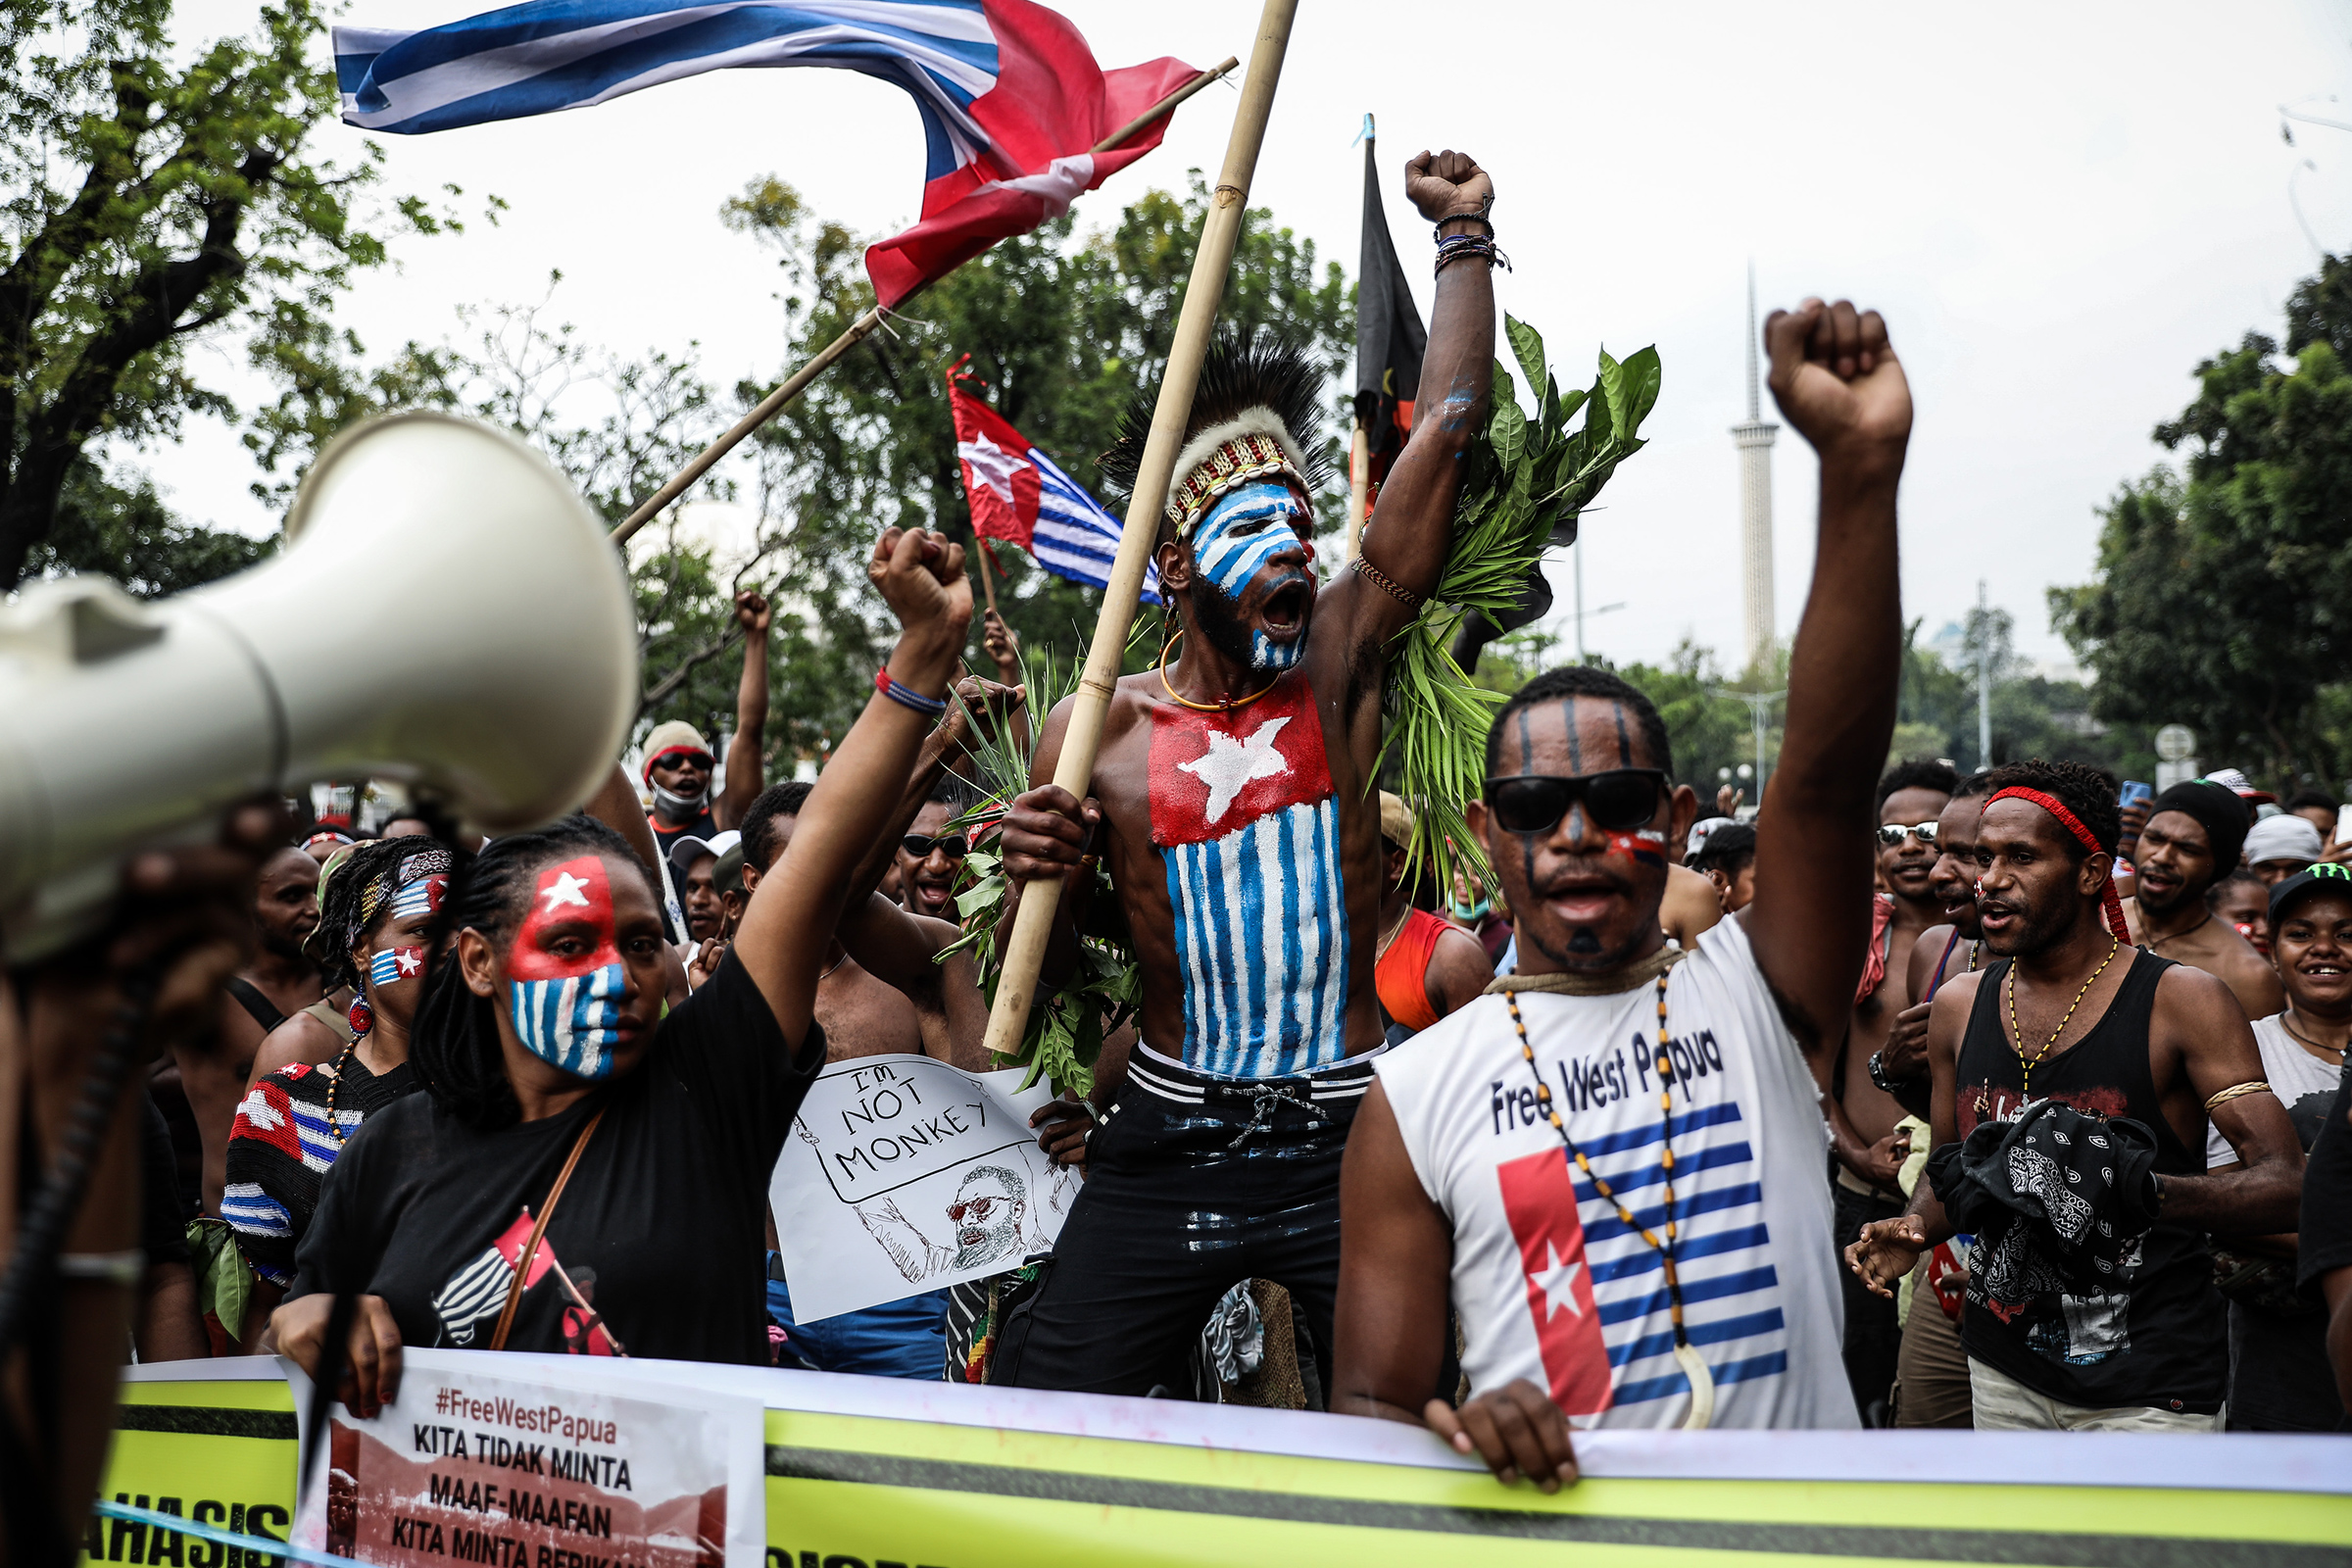 Papuan students shout slogans during a rally in Jakarta on Aug. 28, 2019 supporting West Papua's call for independence from Indonesia